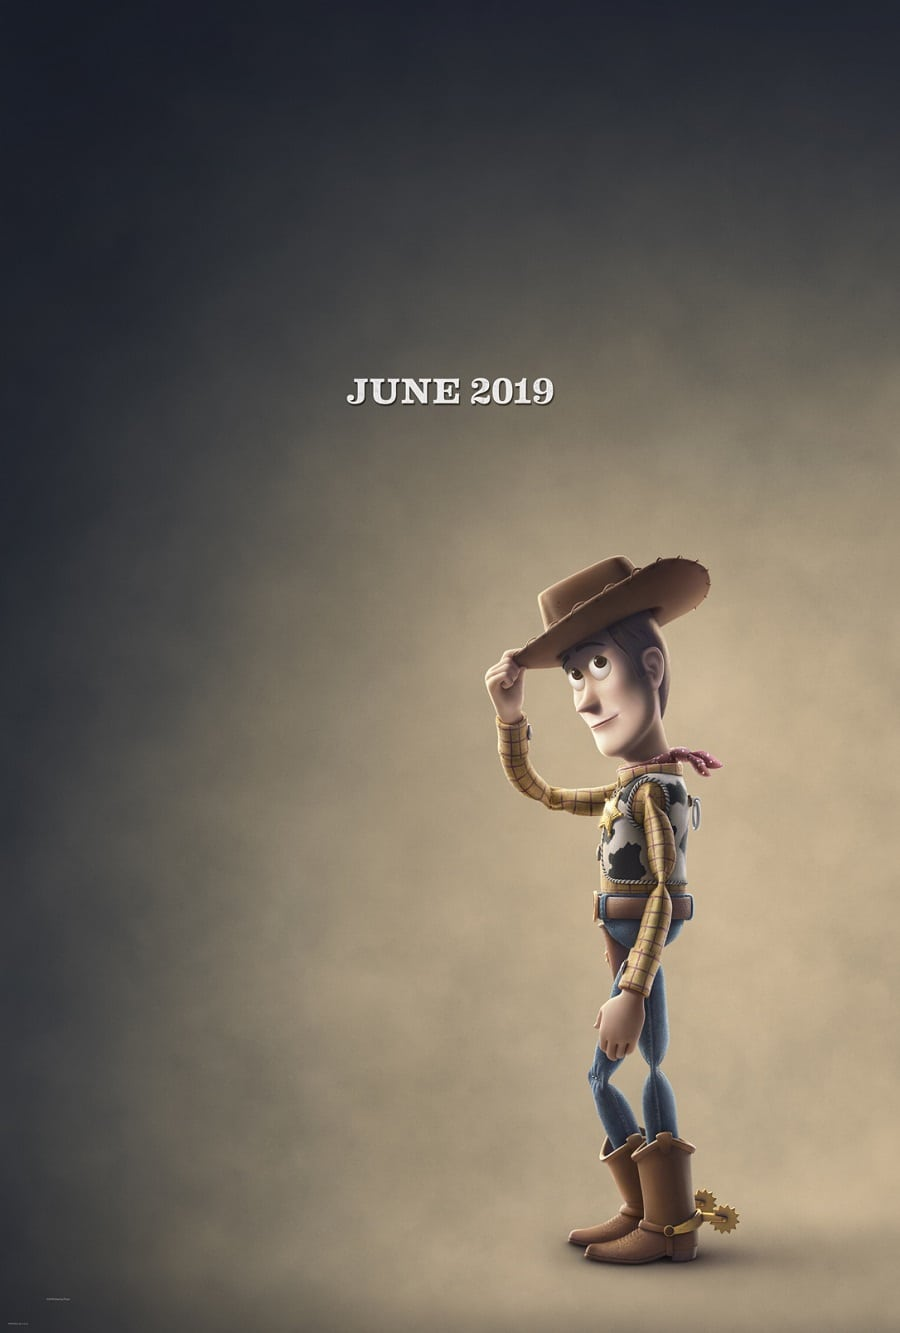 Wait No More! The Toy Story 4 Teaser Trailer and Poster Are Here!